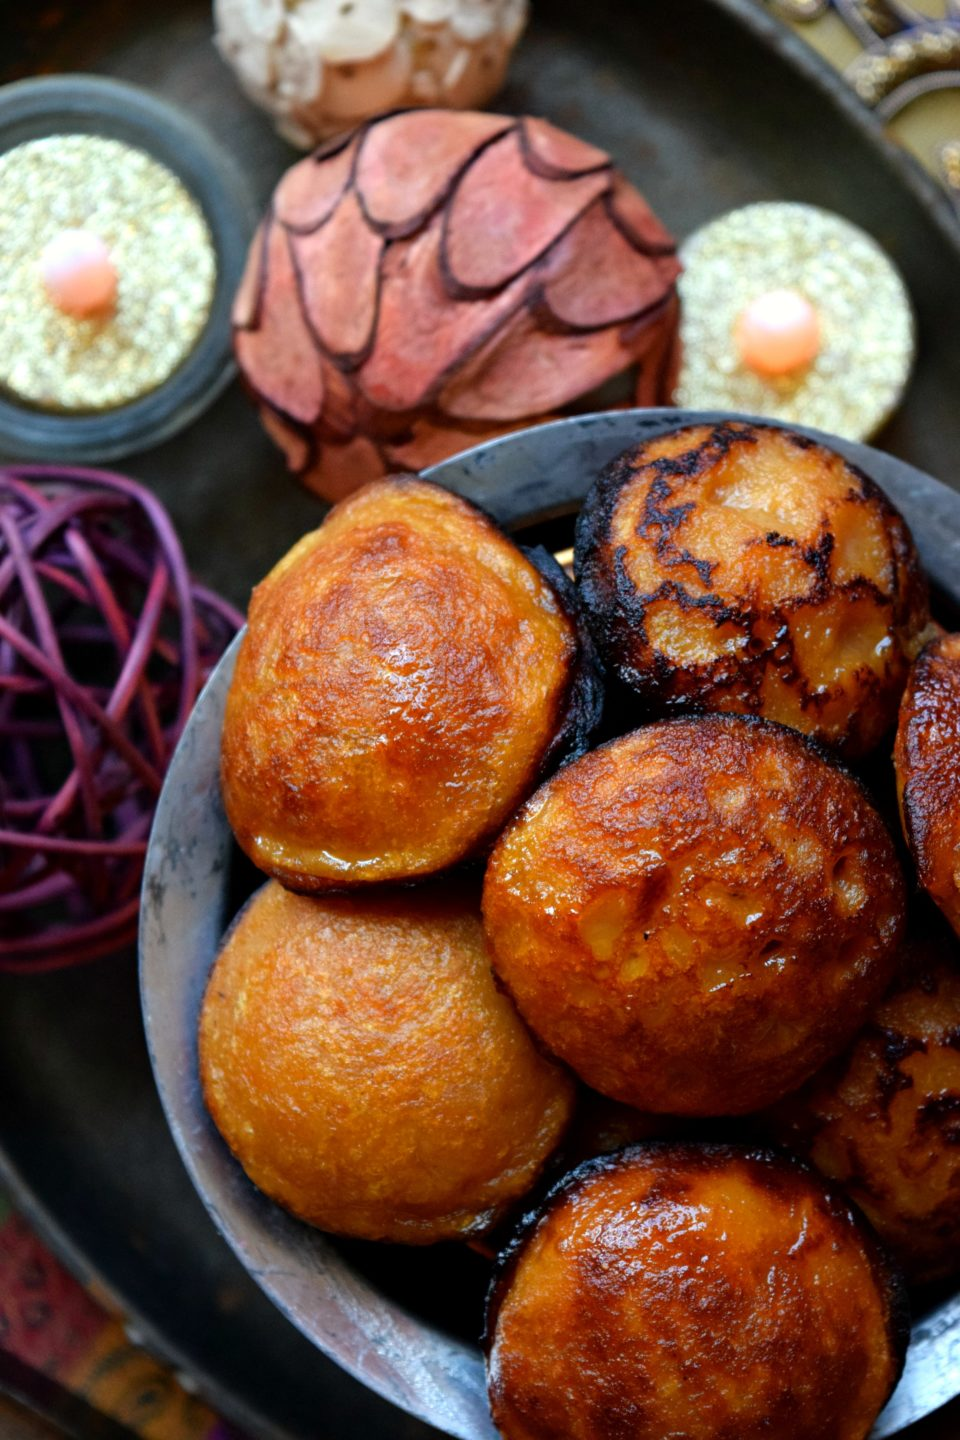 Sweet Potato Nei Paniyaram With Leftover PuranAppetizers & Snacks Desserts Power Breakfasts South Indian